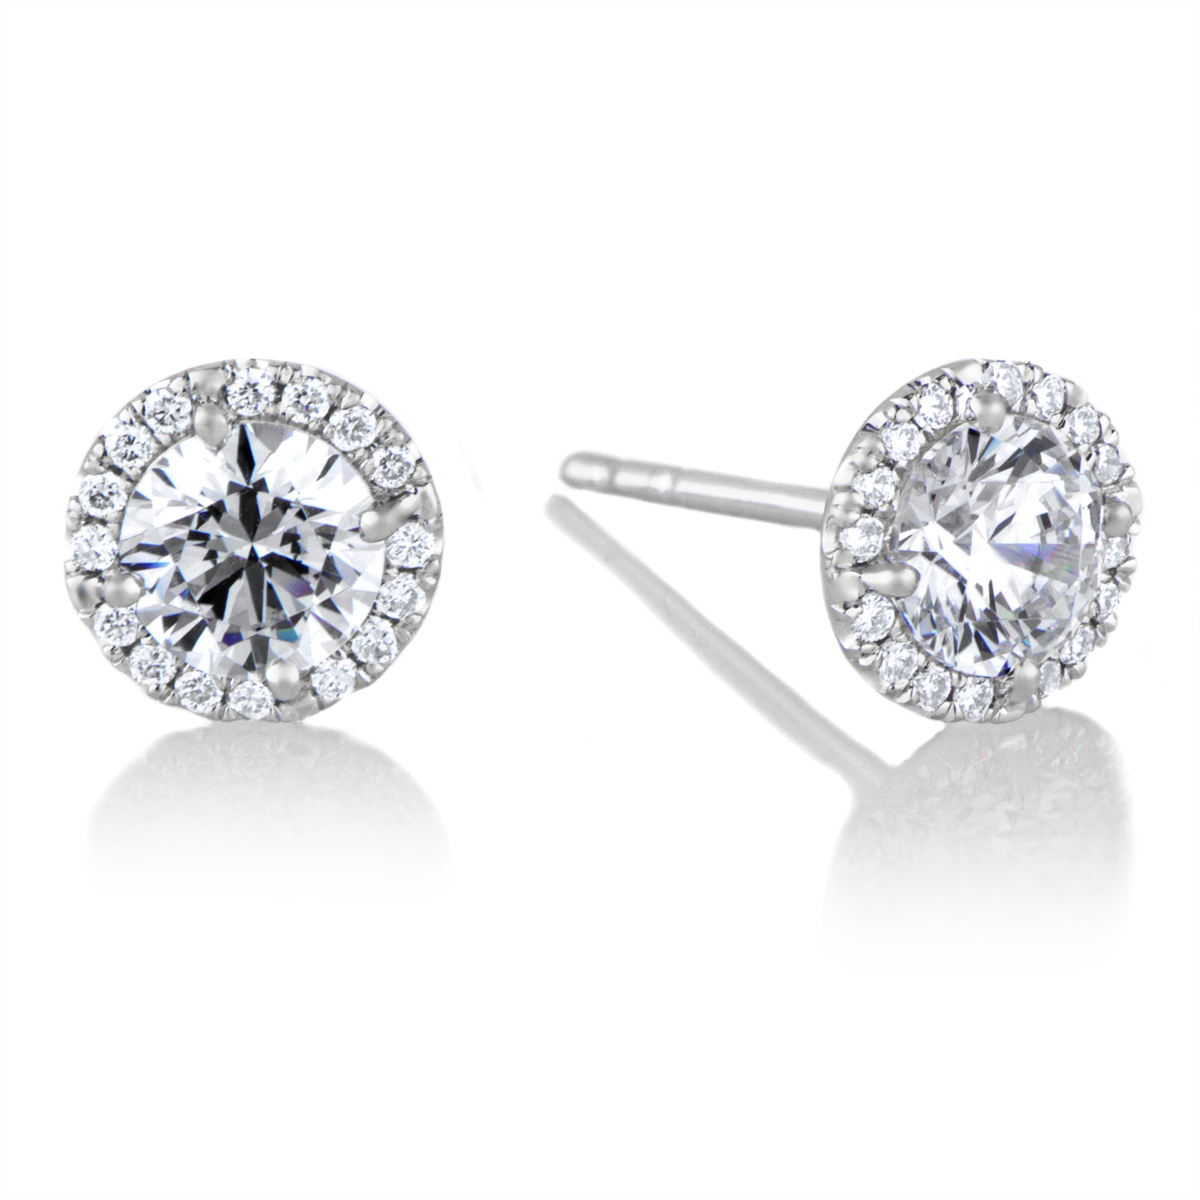 halo 5 mm cz stud earrings in 18kt white gold